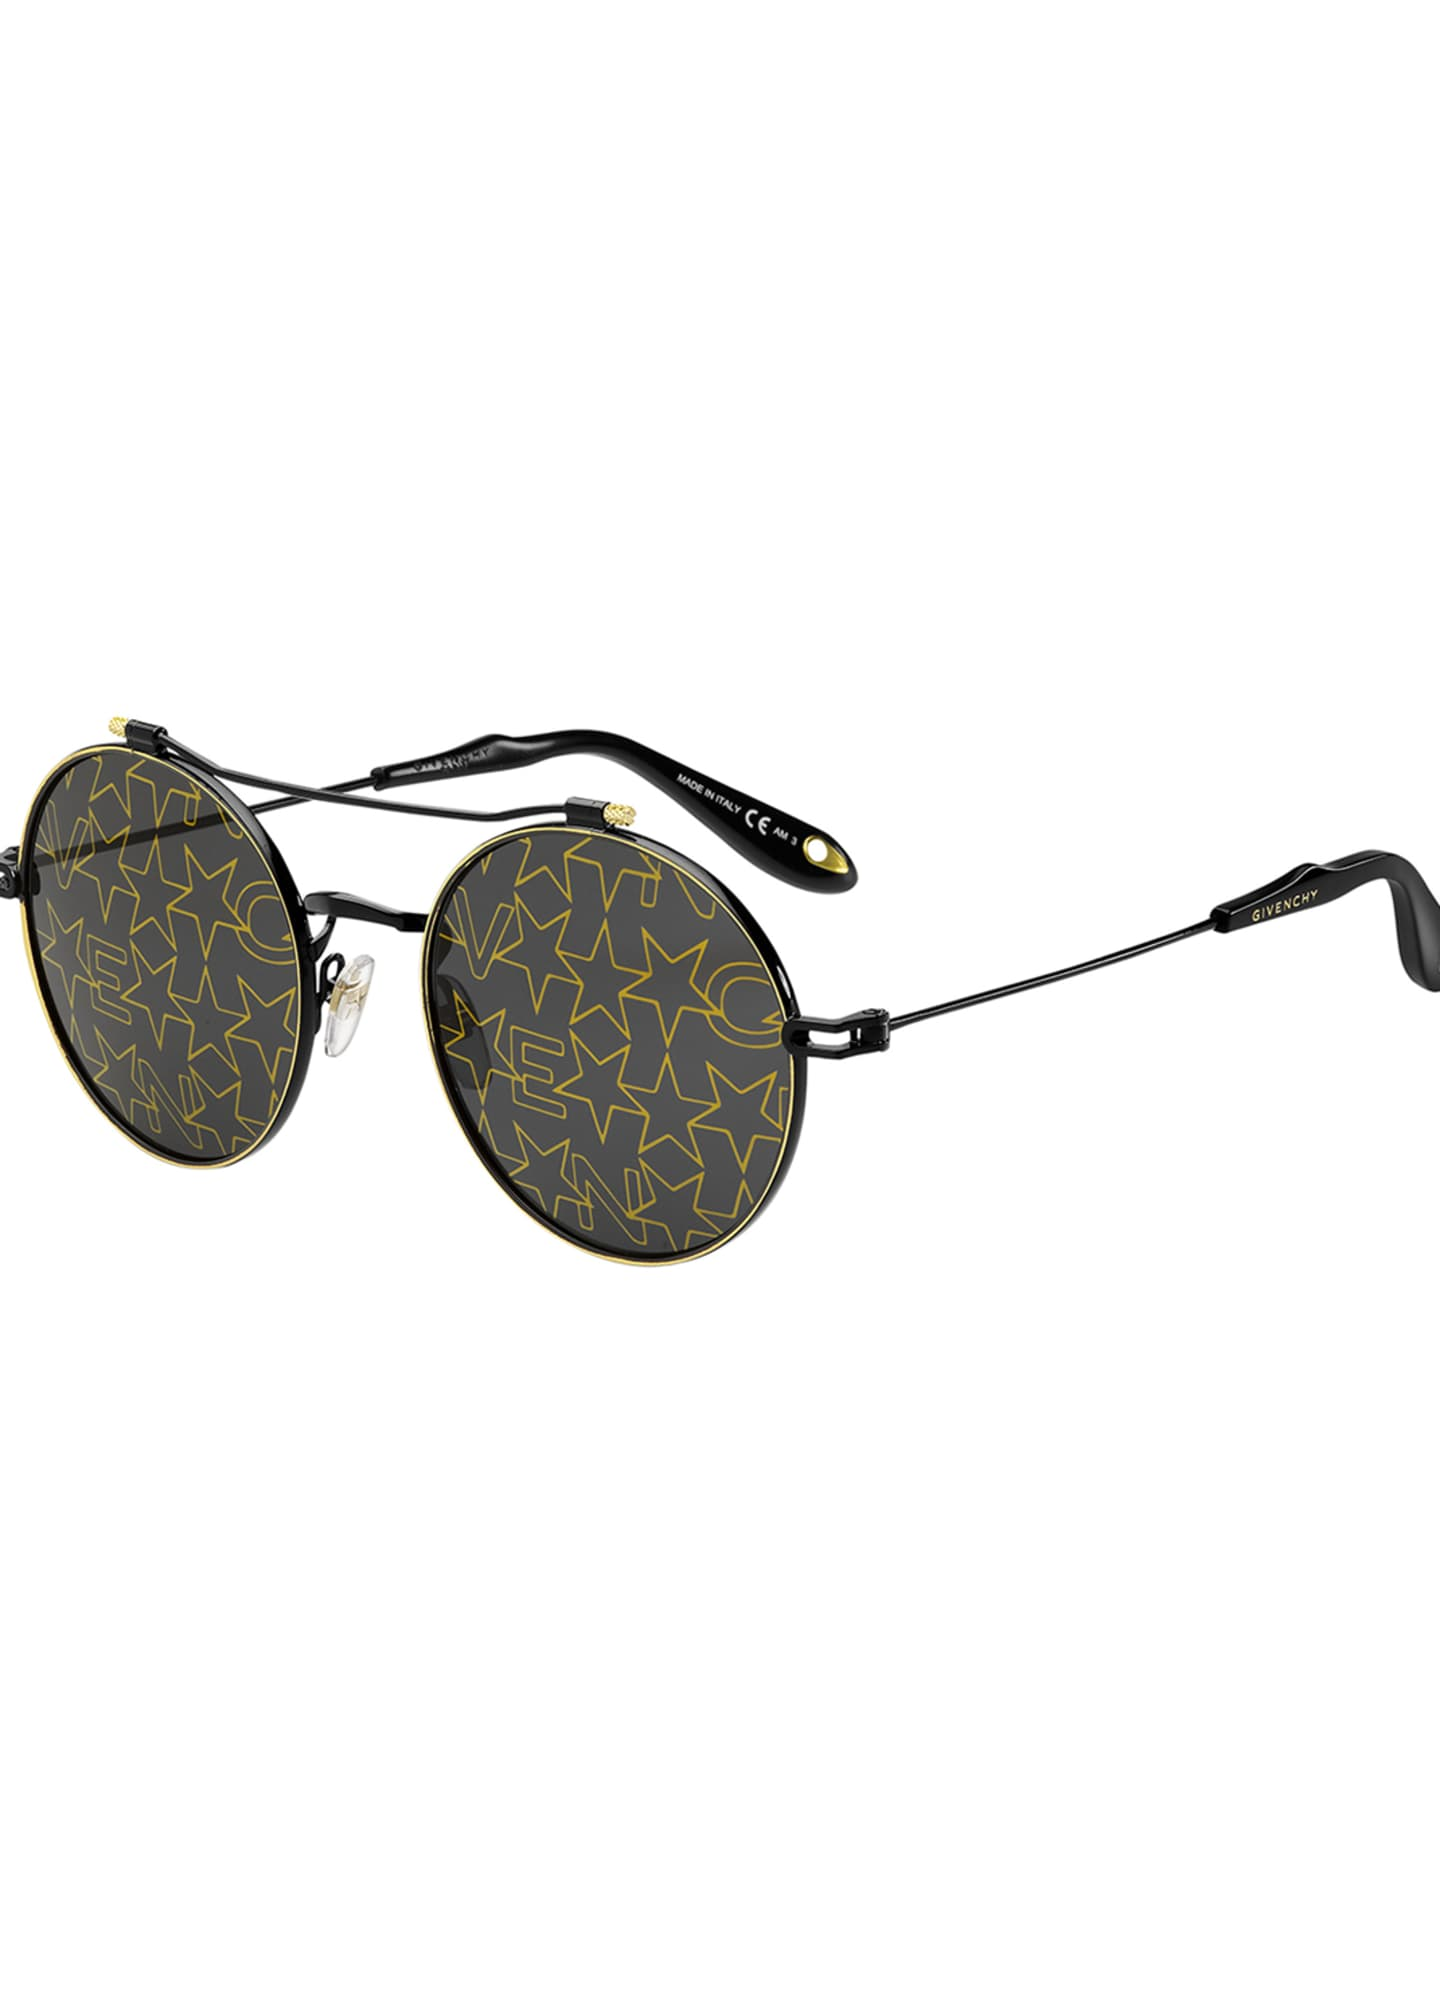 Givenchy Logo & Star Printed Round Sunglasses